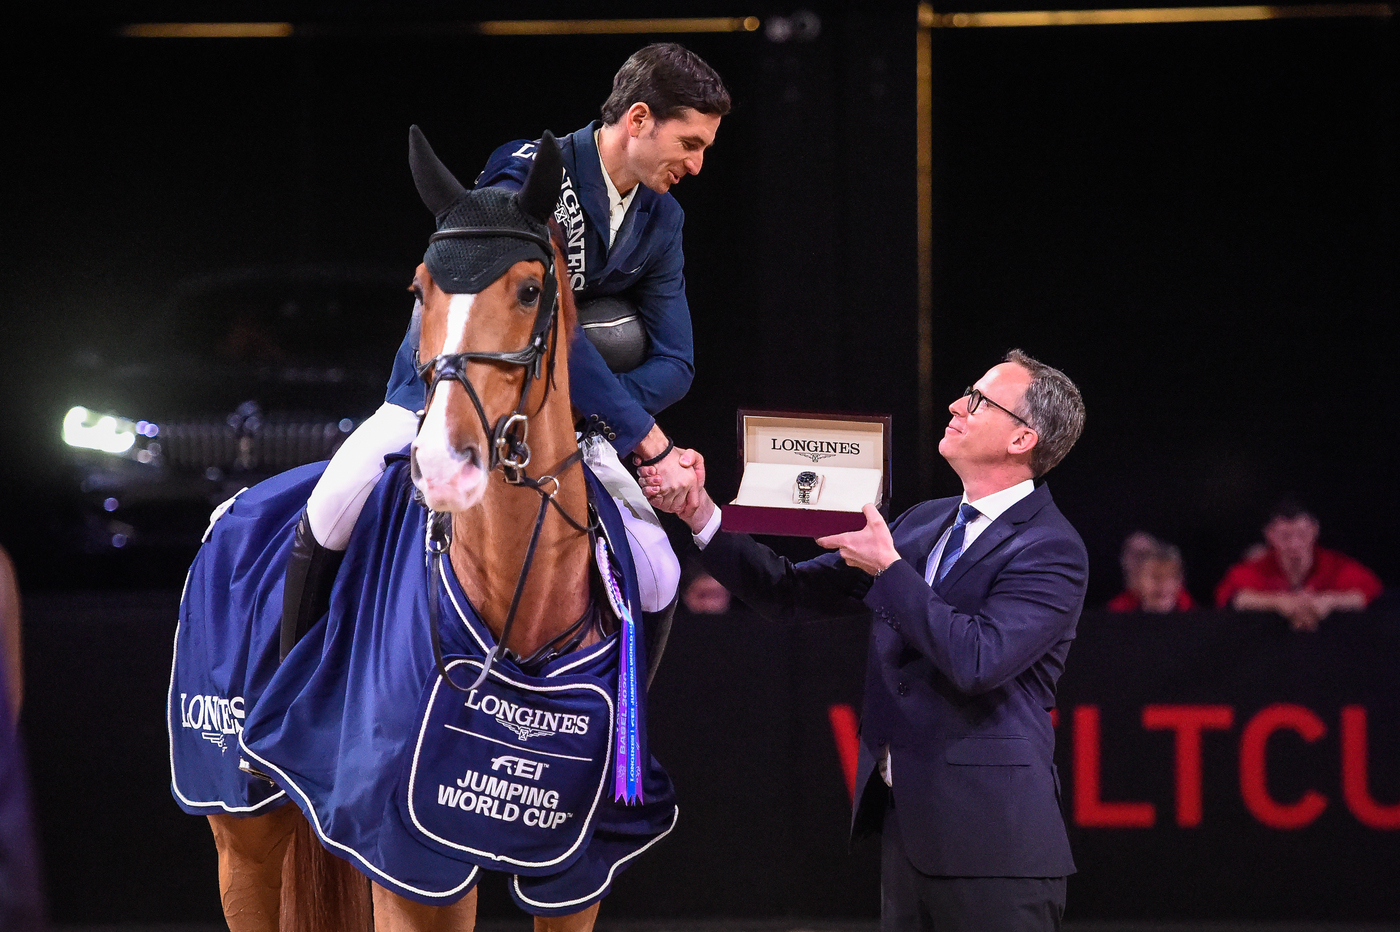 Longines Show Jumping Event: Four days of exciting competitions and exceptional performances for the Longines CSI Basel 2020 3